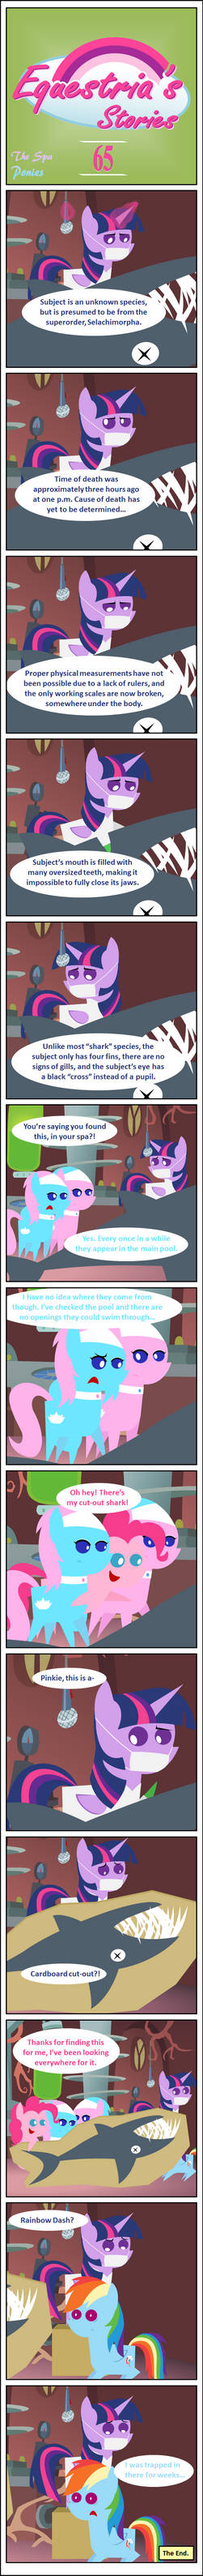 Equestria's Stories - 65 (The Spa Ponies)